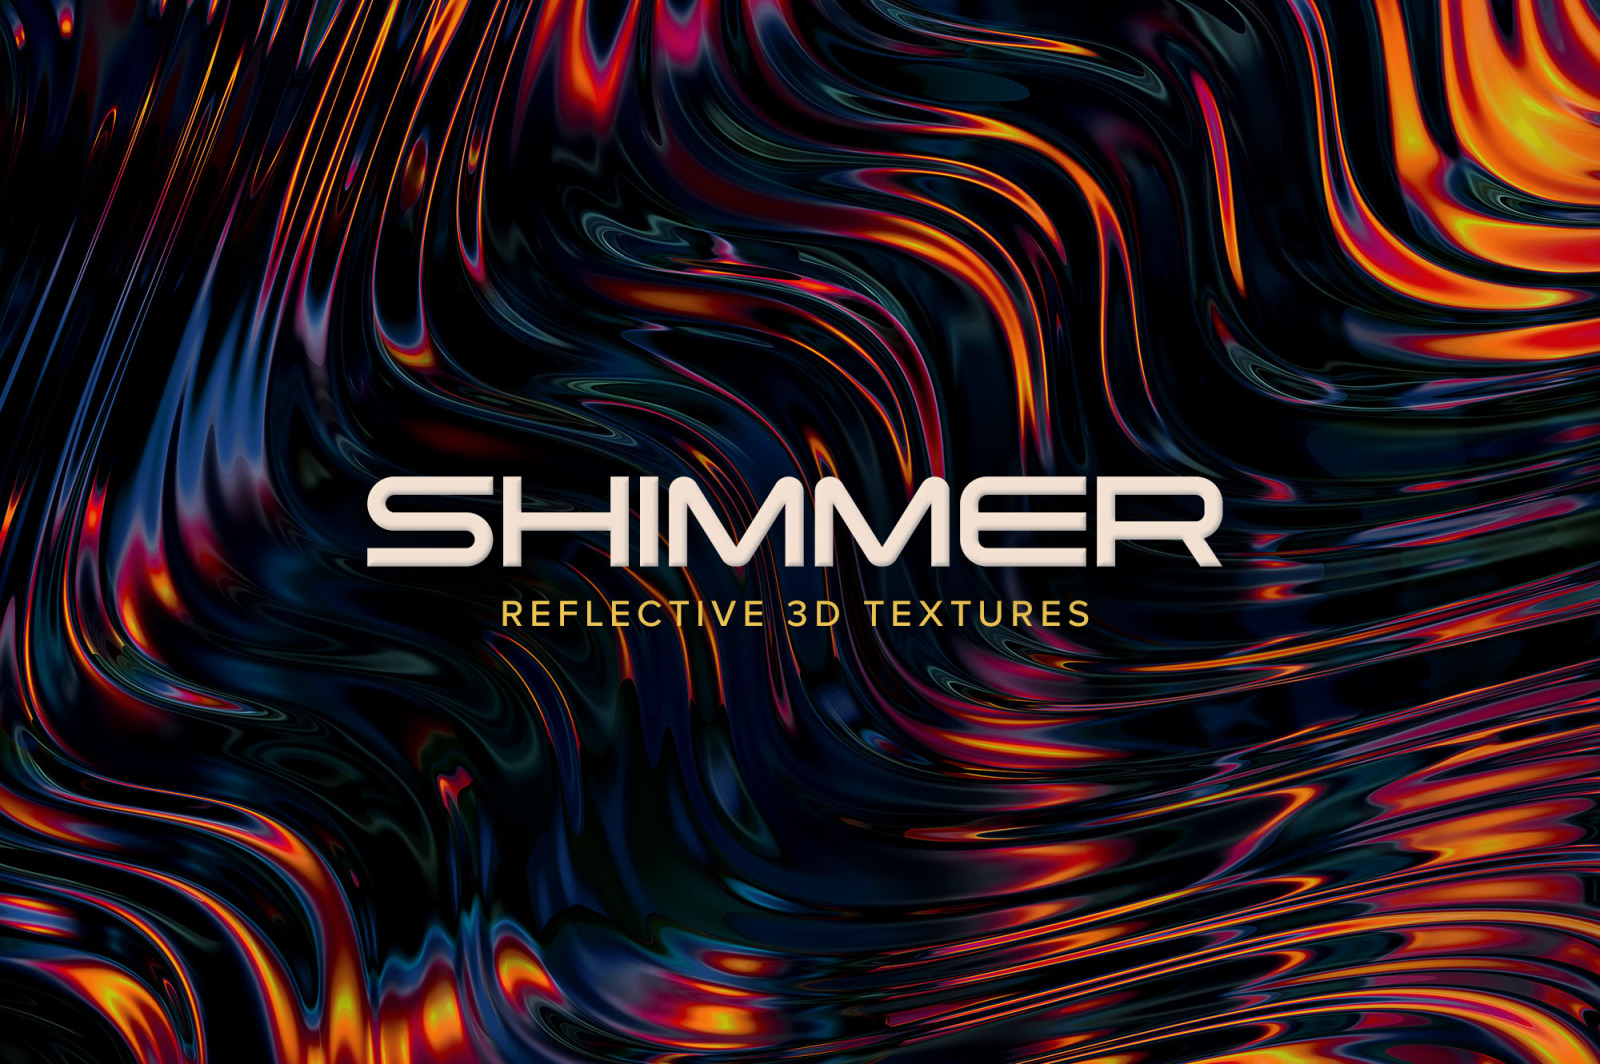 Shimmer: Reflective 3D Textures